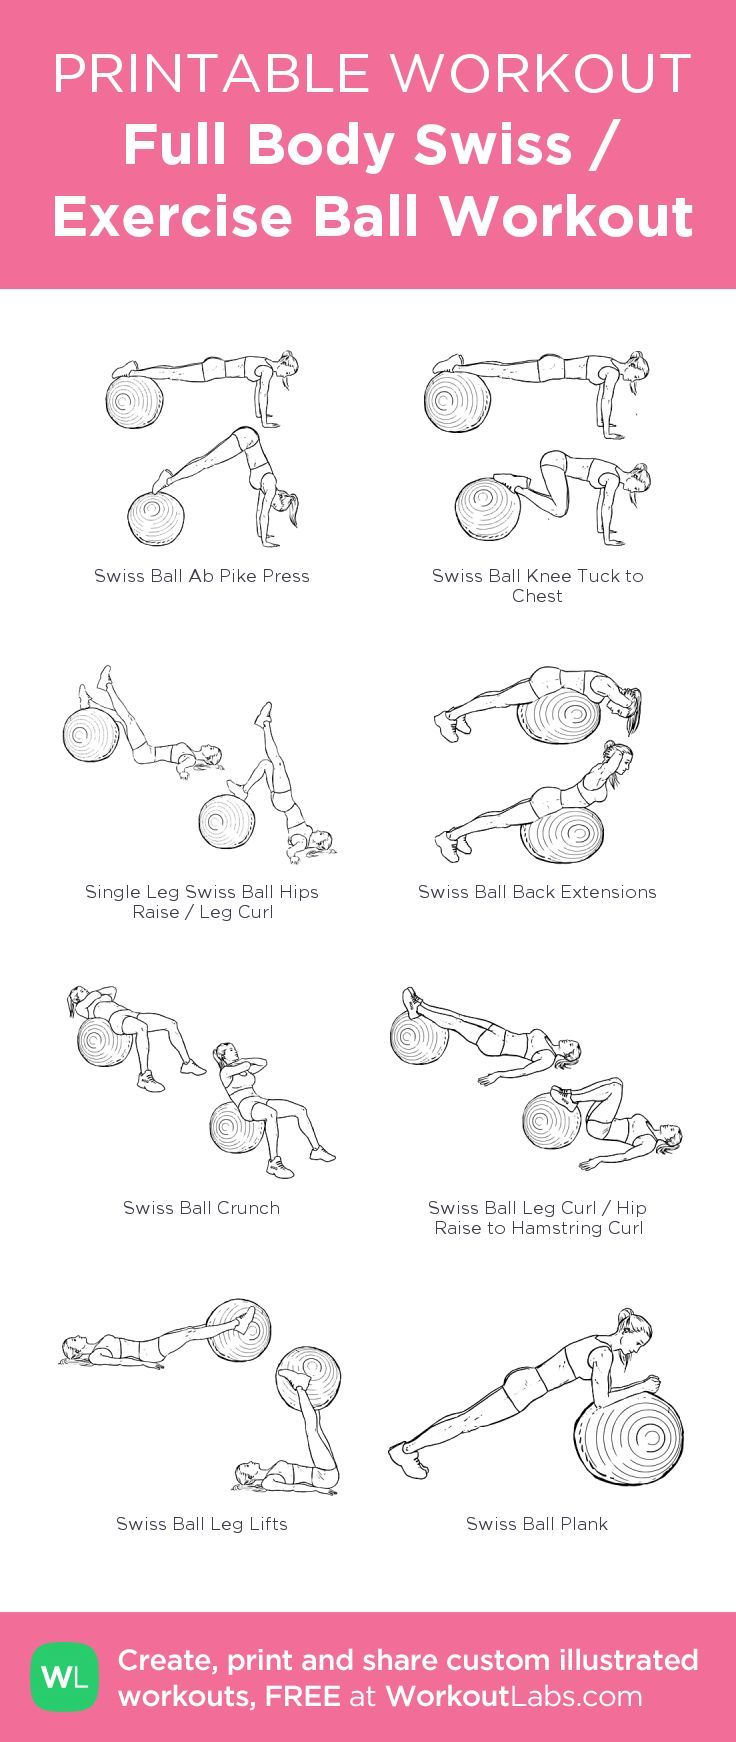 Full Body Swiss / Exercise Ball Workout –my custom workout created at http://WorkoutLabs.com • Click through to download as printable PDF! #customworkout